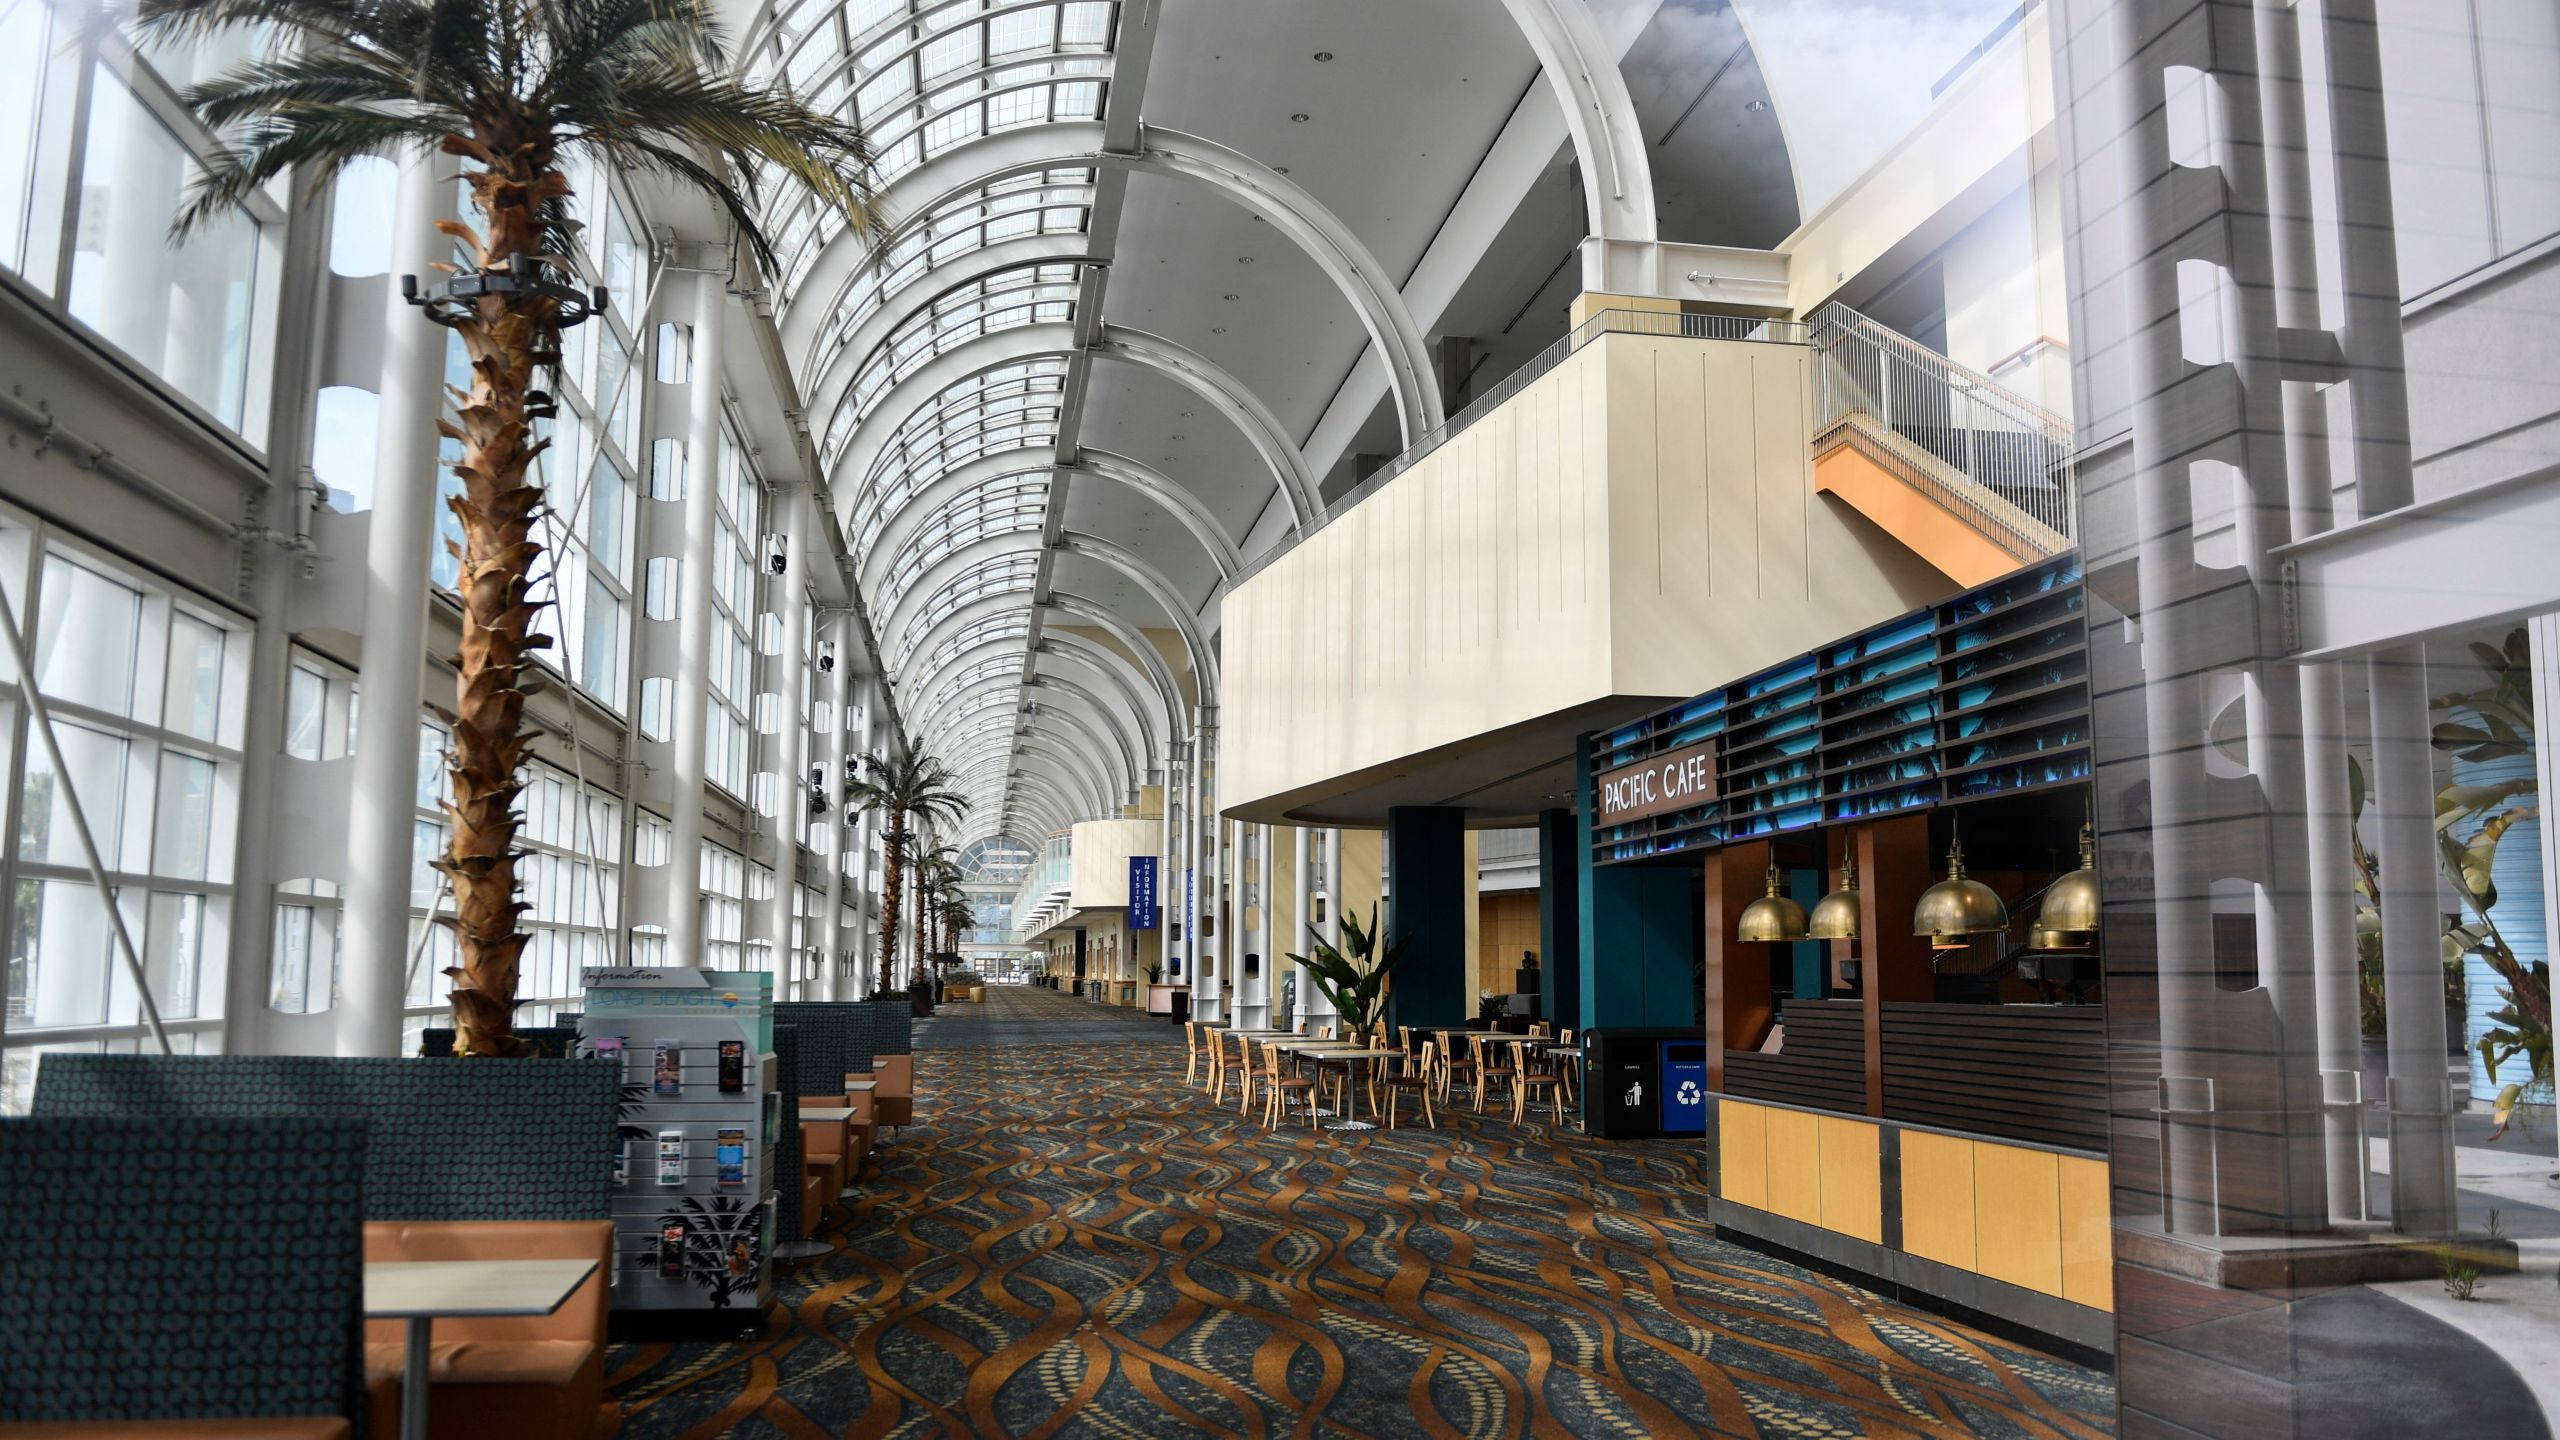 A concourse is seen inside the Long Beach Convention Center on April 7, 2021 in Long Beach. (PATRICK T. FALLON/AFP via Getty Images)